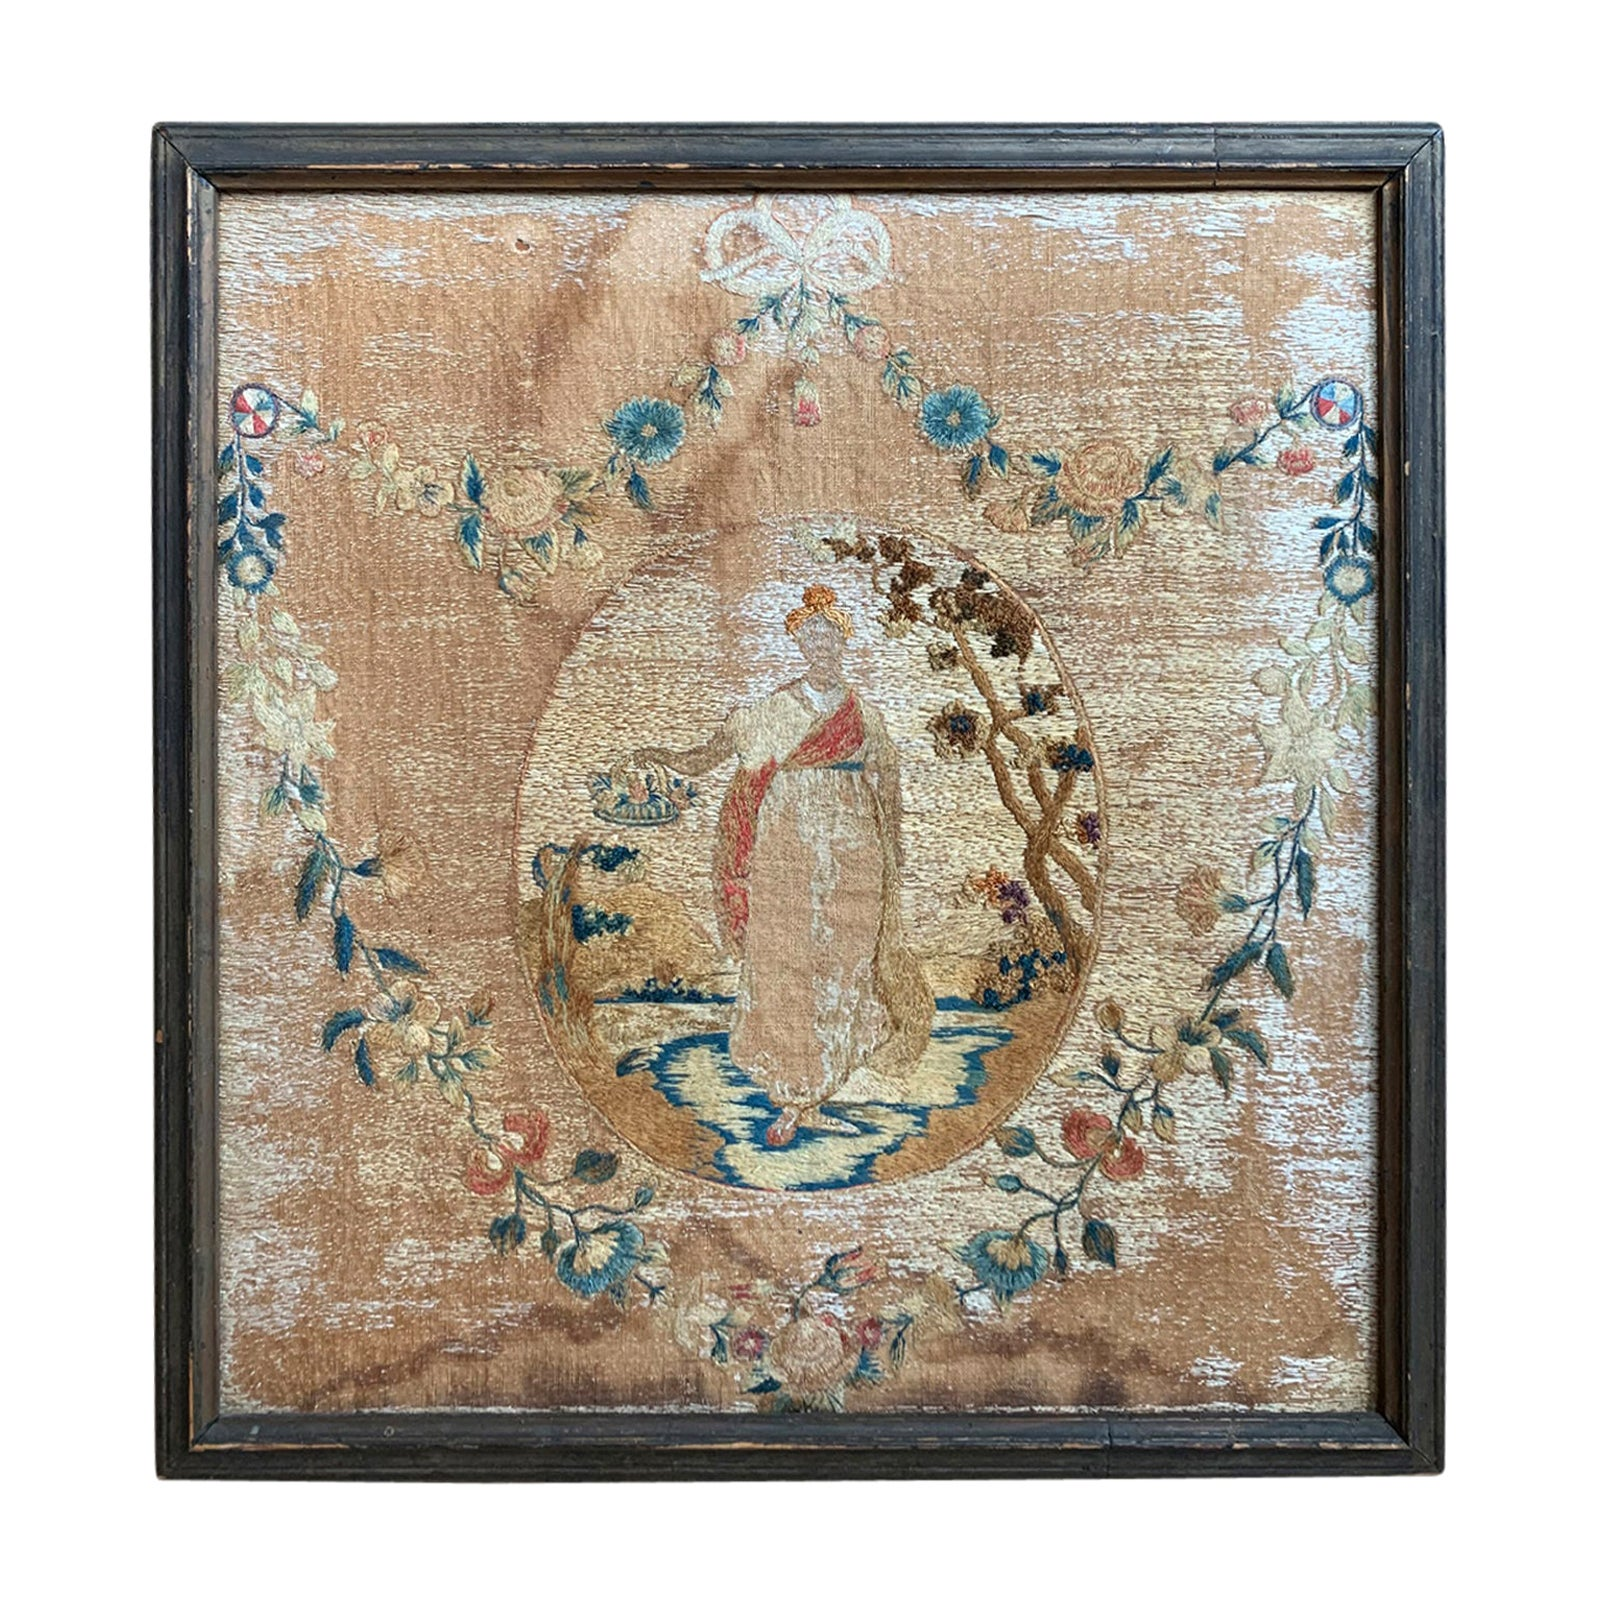 19th Century English Framed Needlework